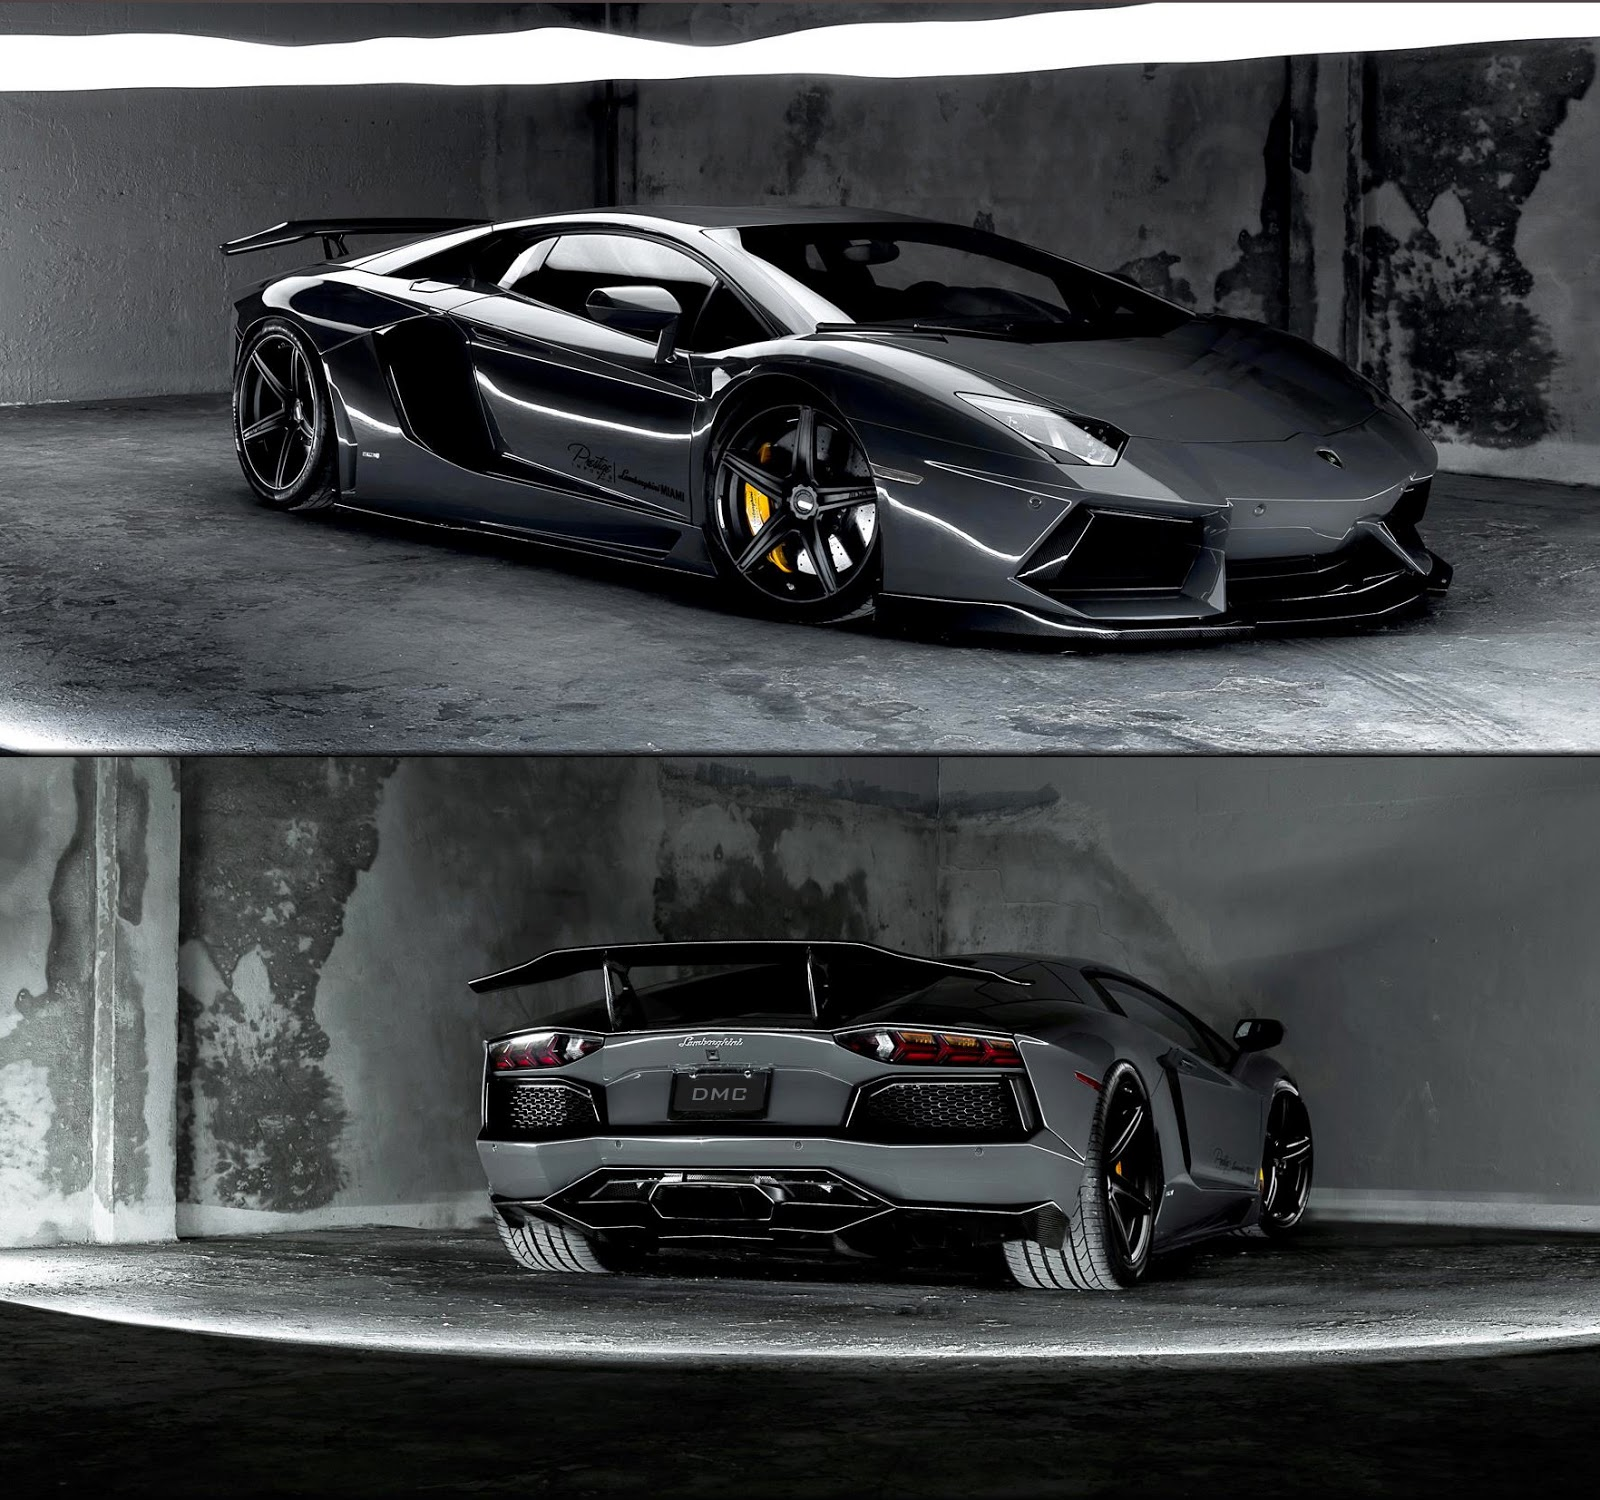 Bugatti Chiron Supersport Rendered As 300 Mph Monster: Custom Tuning Bringing DMC Carbon Kits For Ferrari F12 And